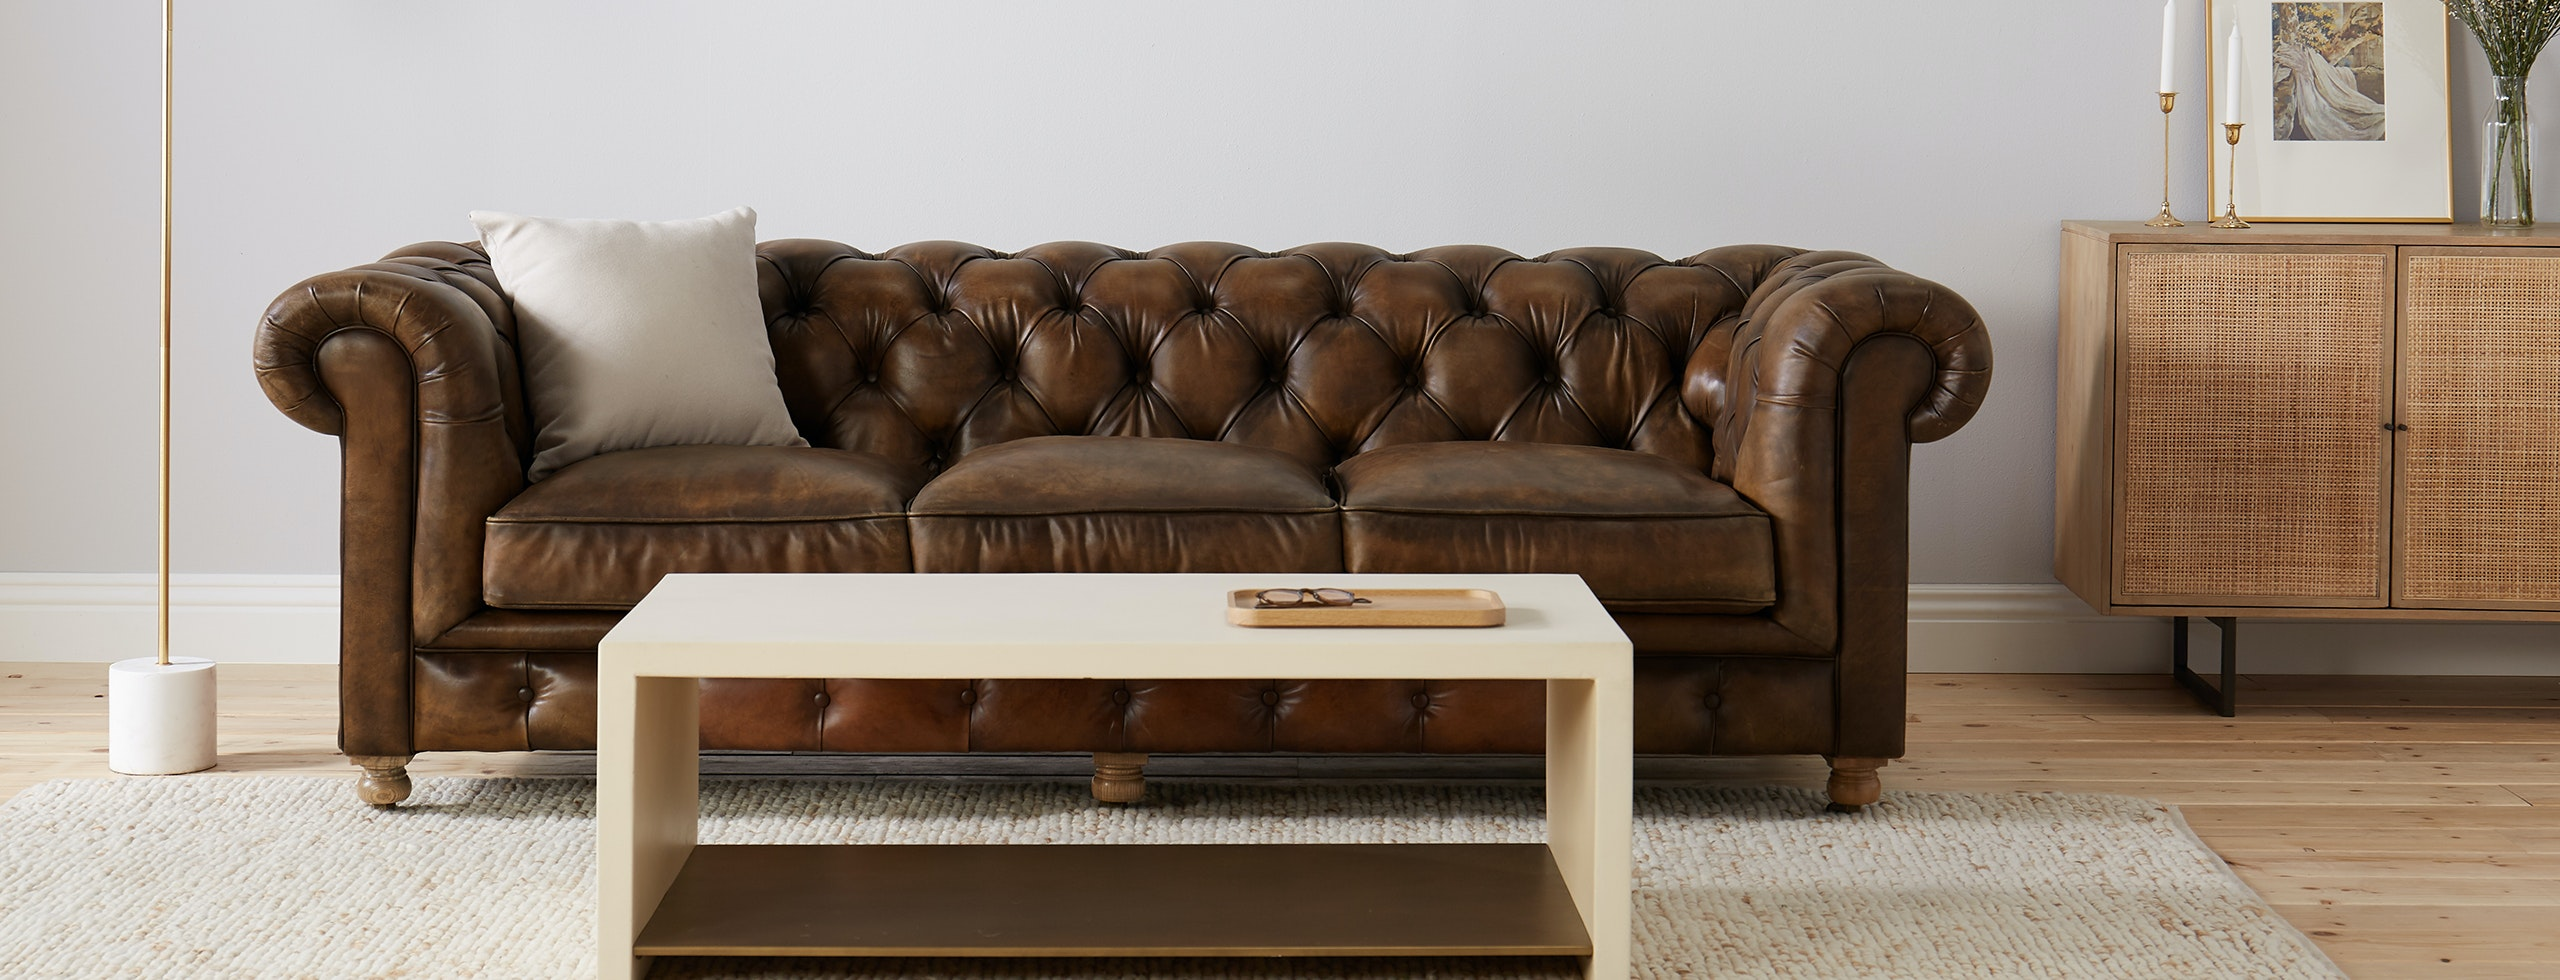 Sofa In Chesterfield Look Liam Leather Sofa